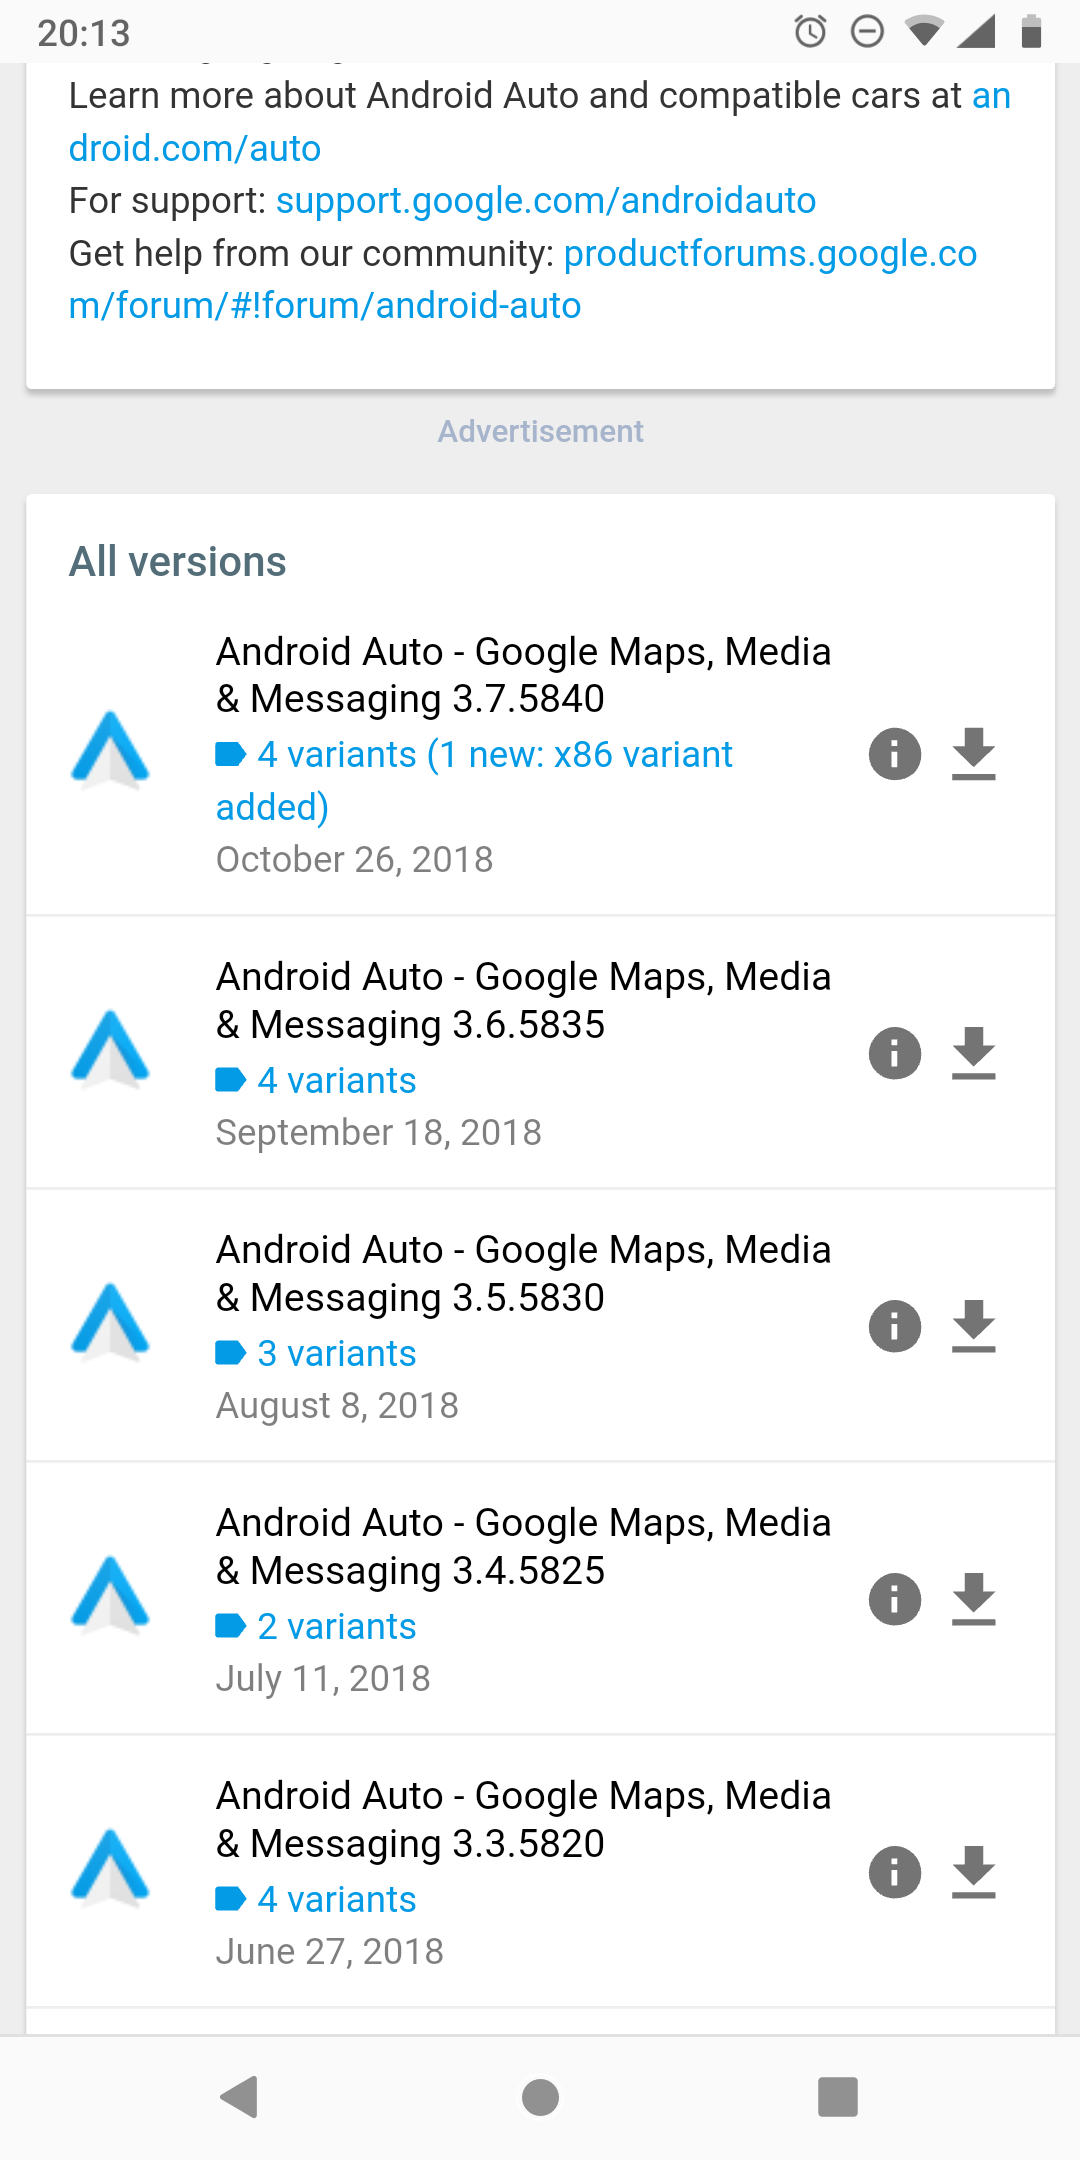 Android Auto downloaden en installeren: zo doe je dat in 6